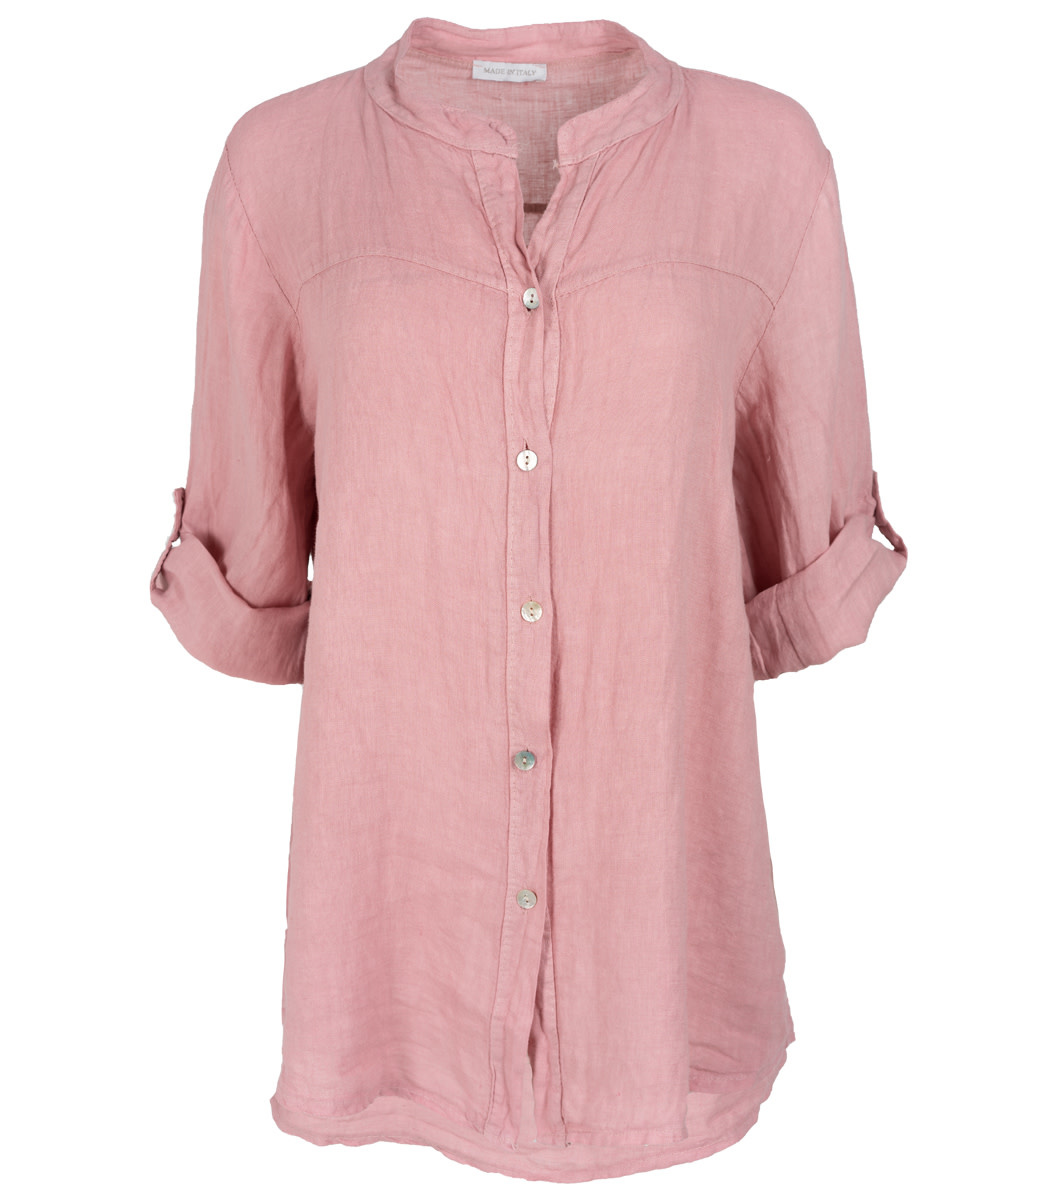 Wannahavesfashion Blouse roze linnen Rosa